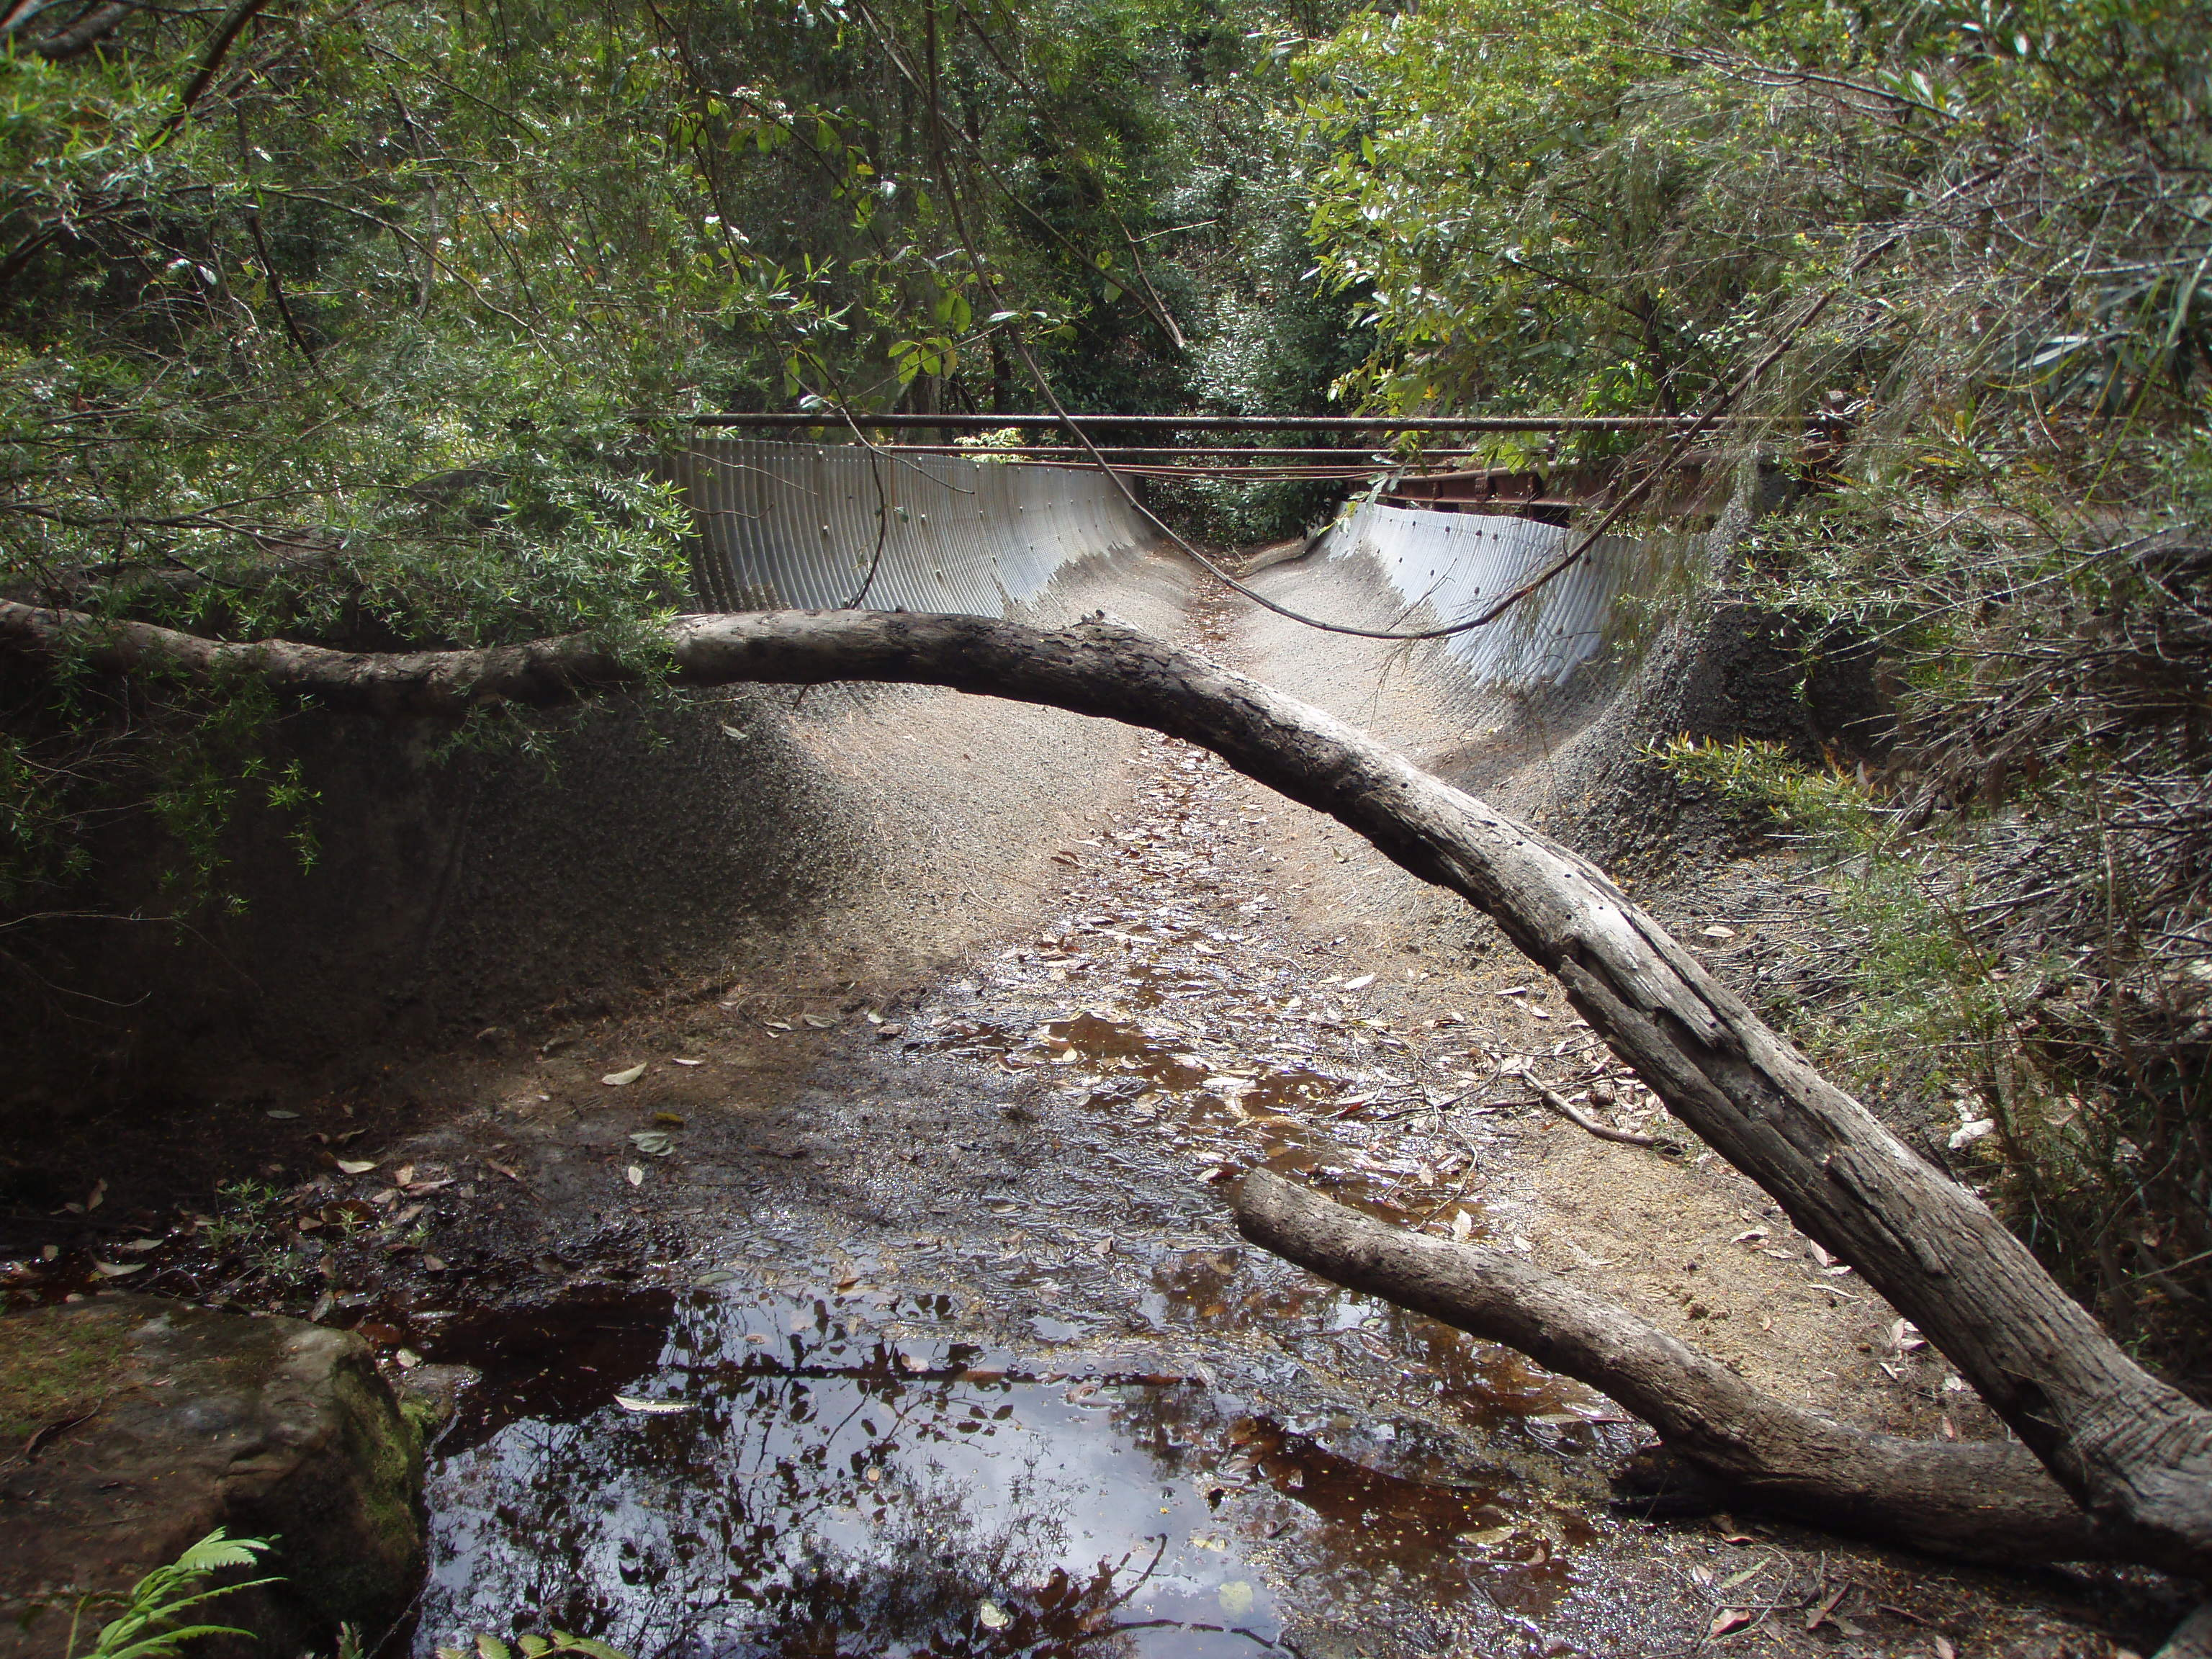 https://upload.wikimedia.org/wikipedia/commons/6/60/Creek_diversion_above_the_southern_portal_of_Woy_Woy_tunnel.jpg